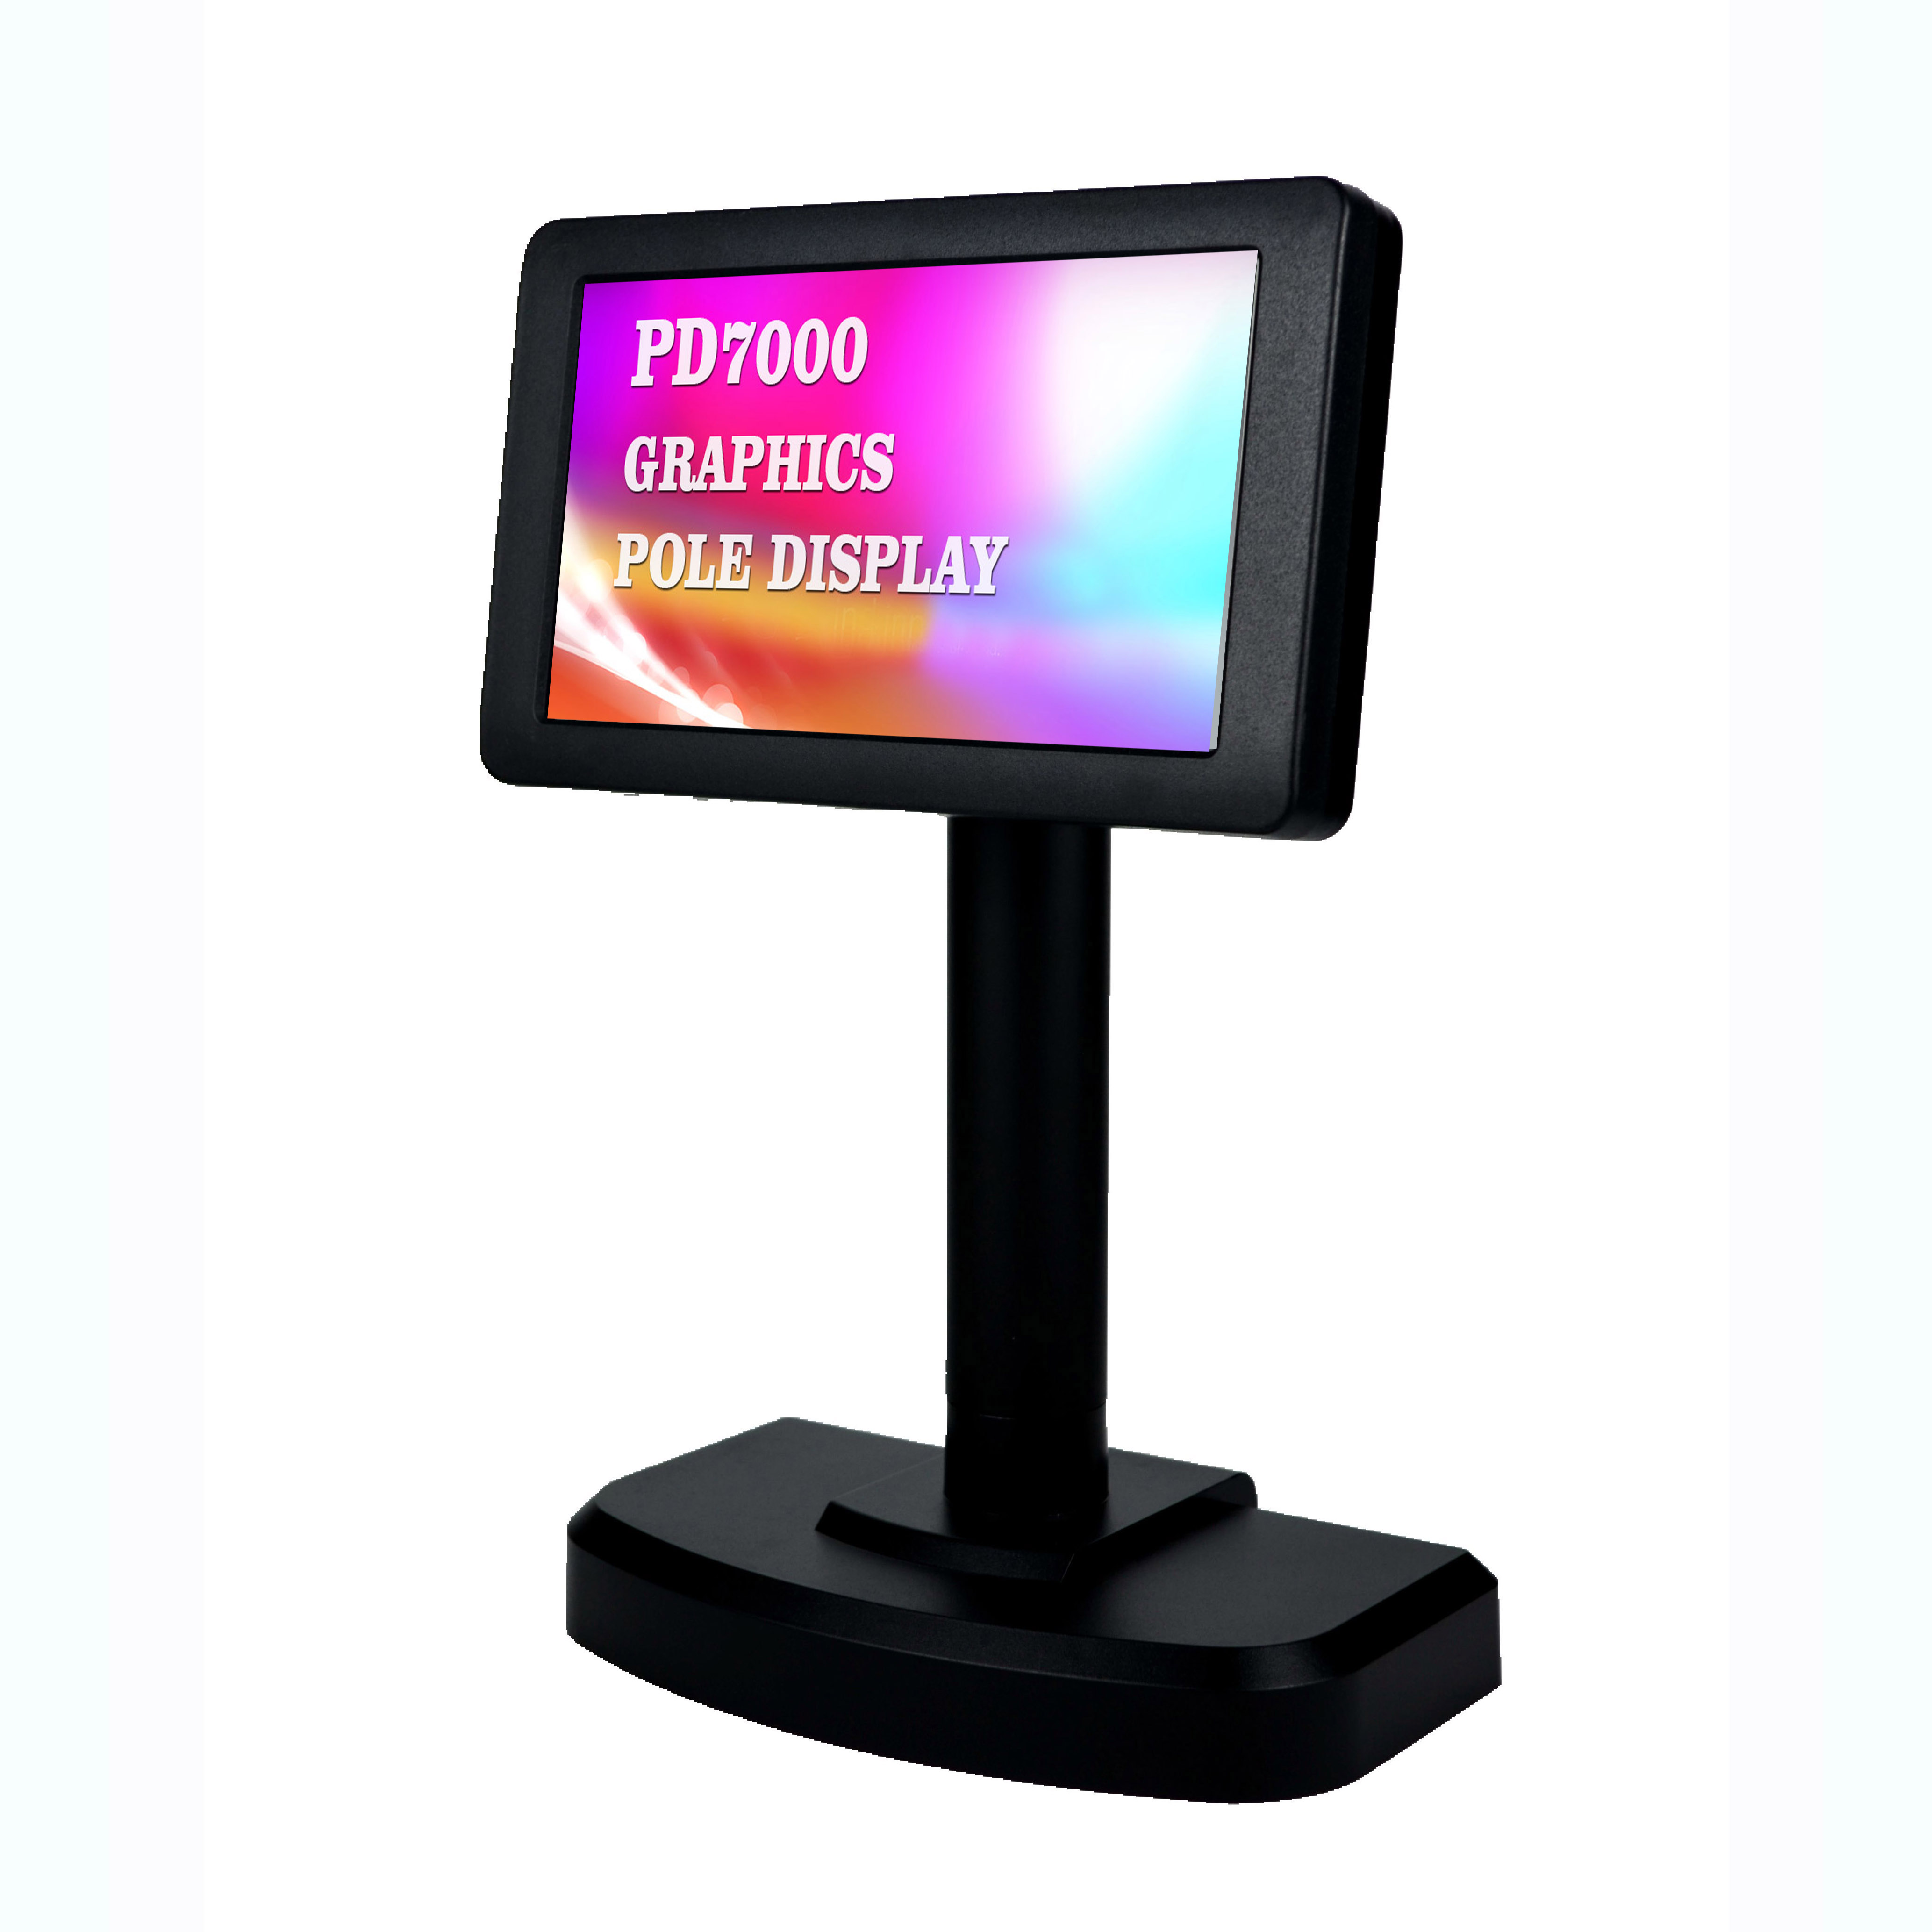 Metalogic PD7000 Graphics Customer Display